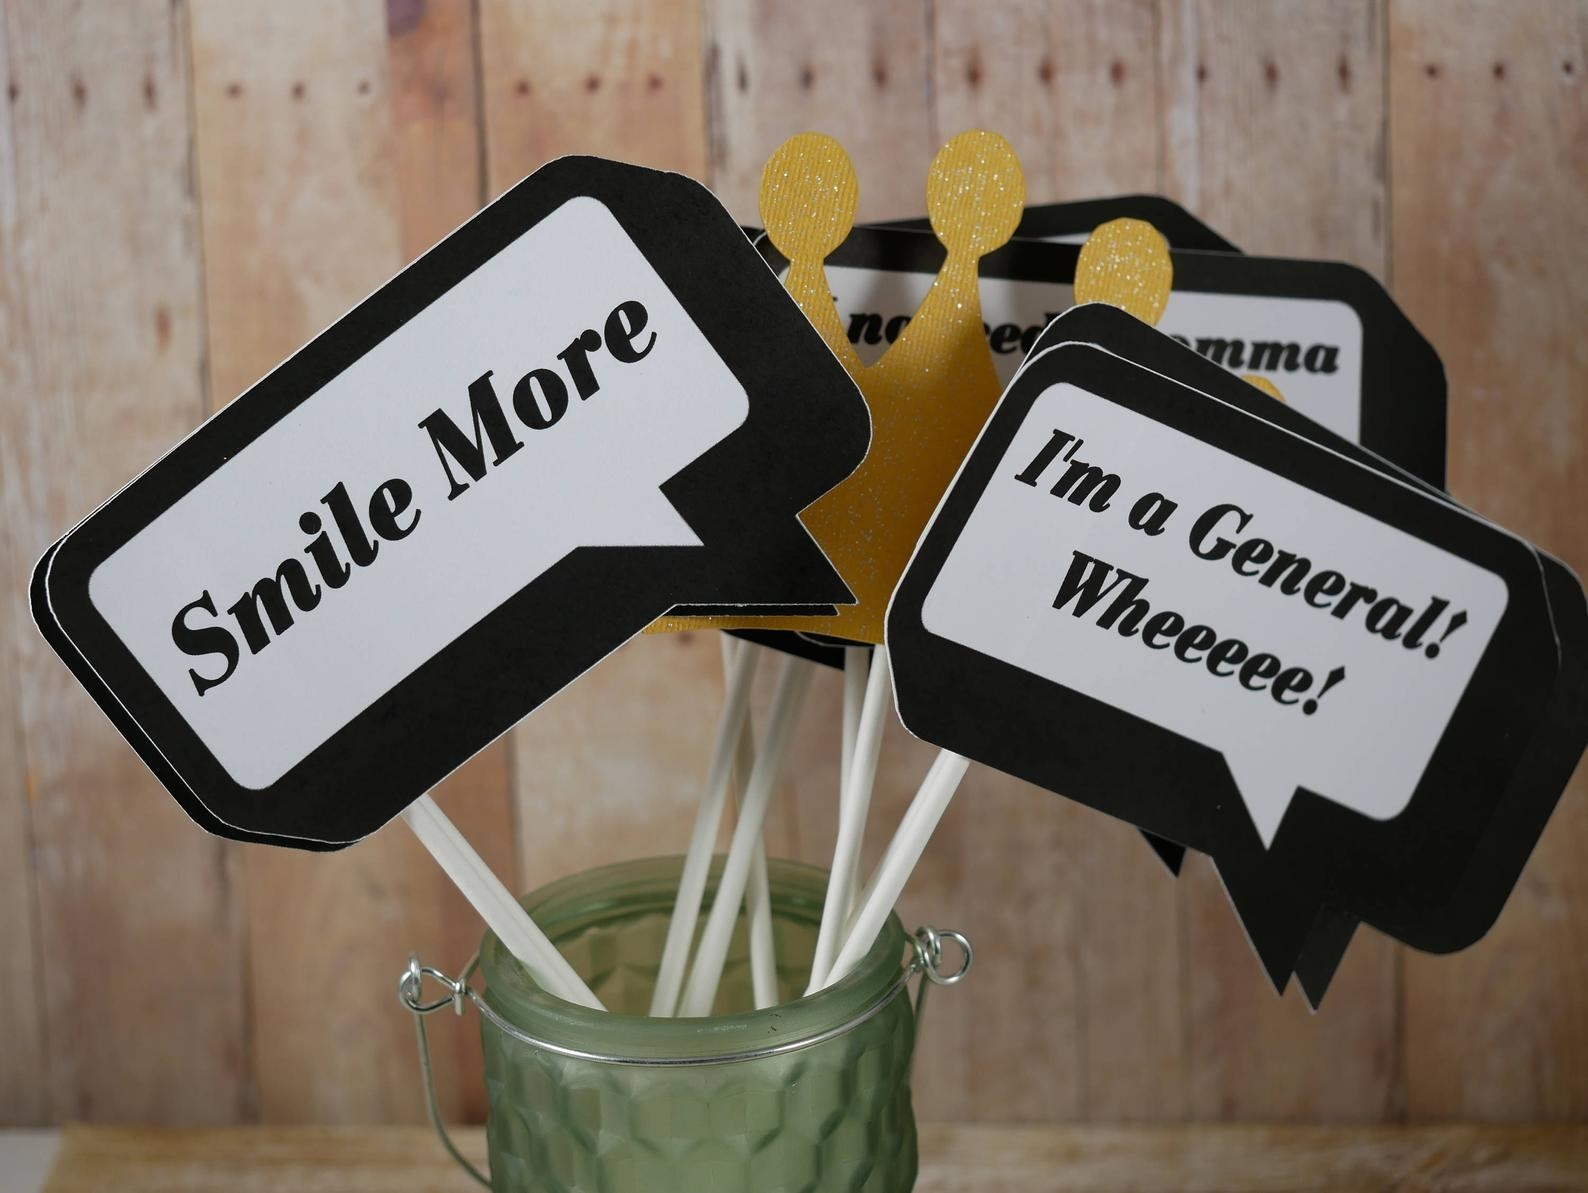 """Quote bubbles that say """"Smile More"""" and """"I'm a General! Wheeee!"""" with sticks on the end of them to pose with"""